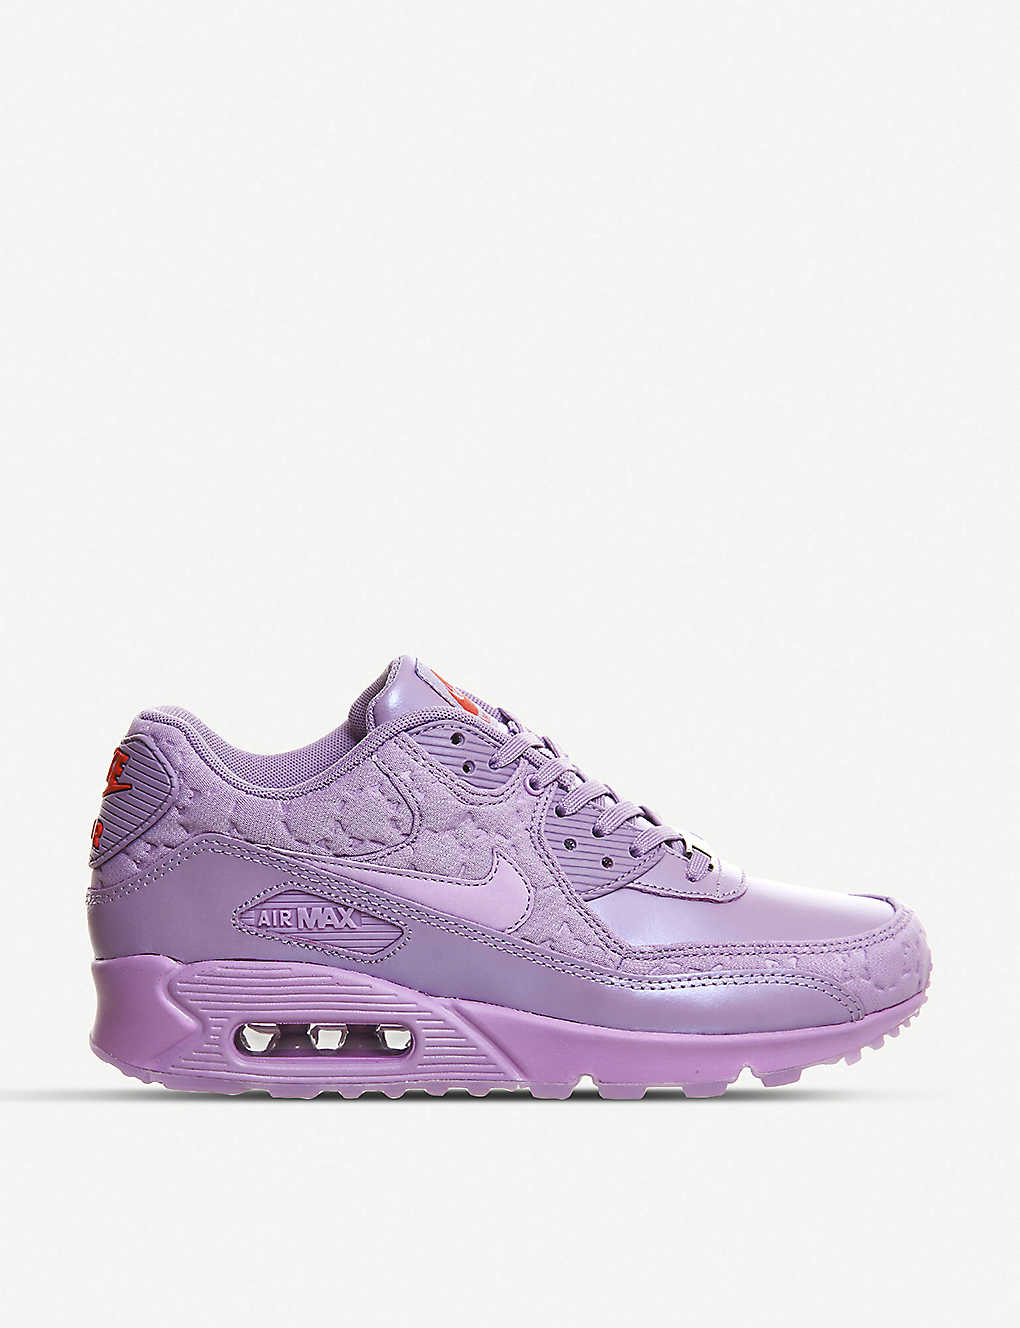 check out 45a6e bda65 NIKE Air max 90 quilted trainers